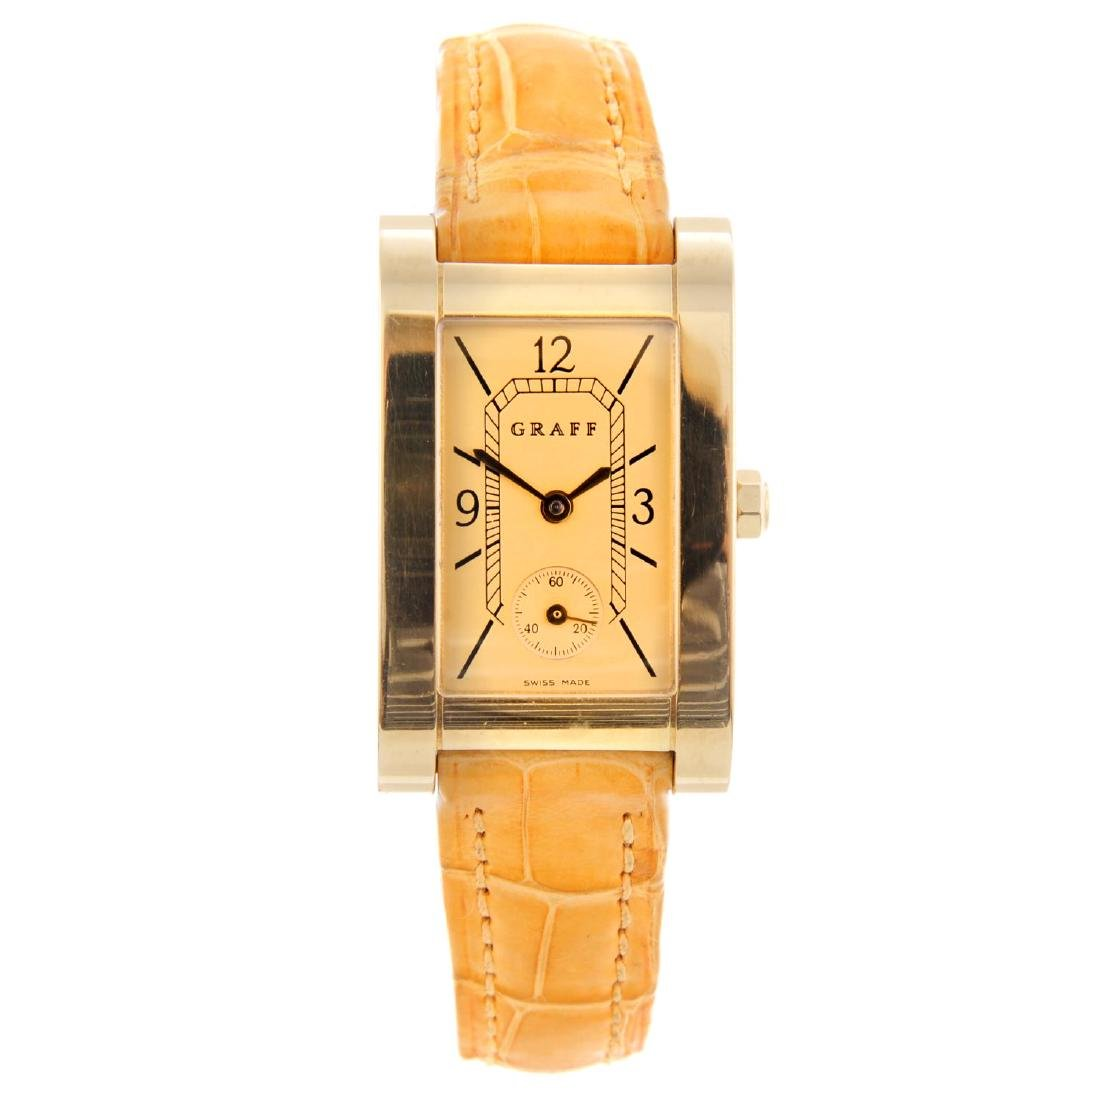 GRAFF - a lady's wrist watch. 18ct yellow gold case.